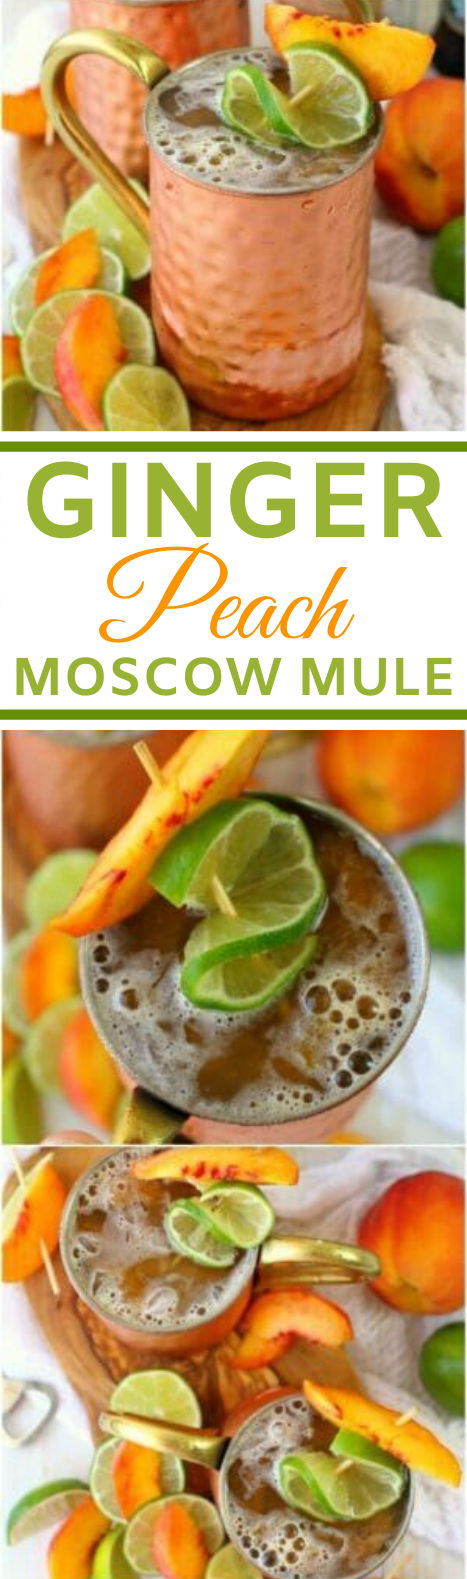 Ginger Peach Moscow Mule #drinks #alcohol #party #summer #refreshing